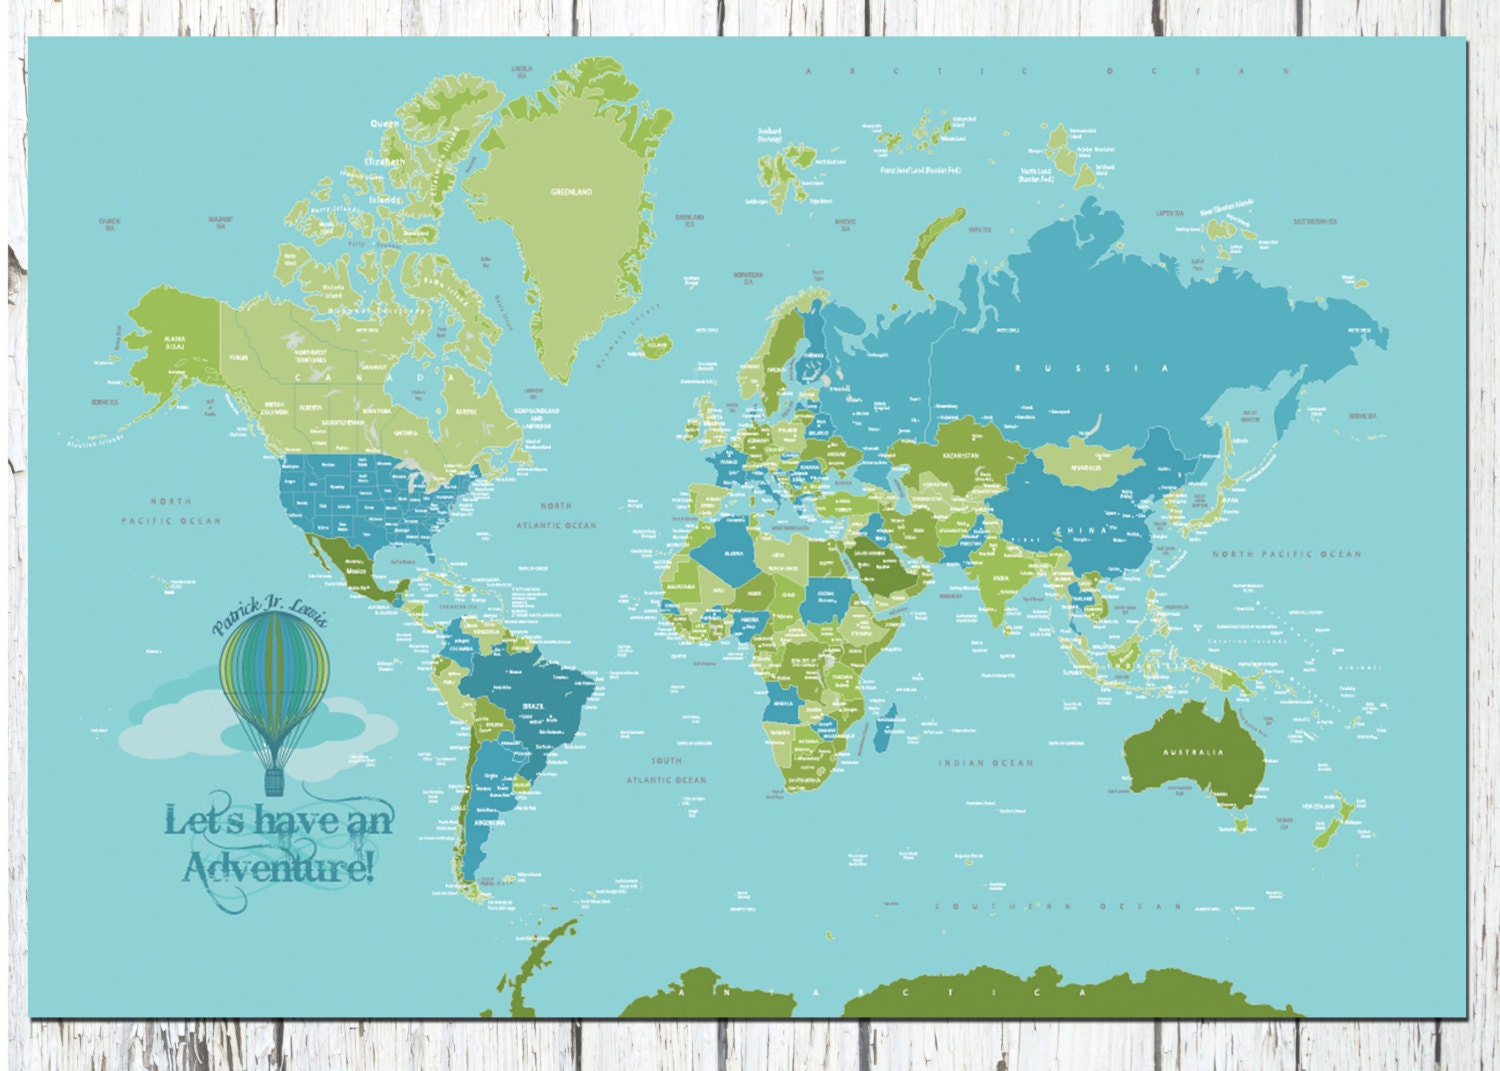 World map poster country names 40x60 travel artwork travel zoom gumiabroncs Image collections